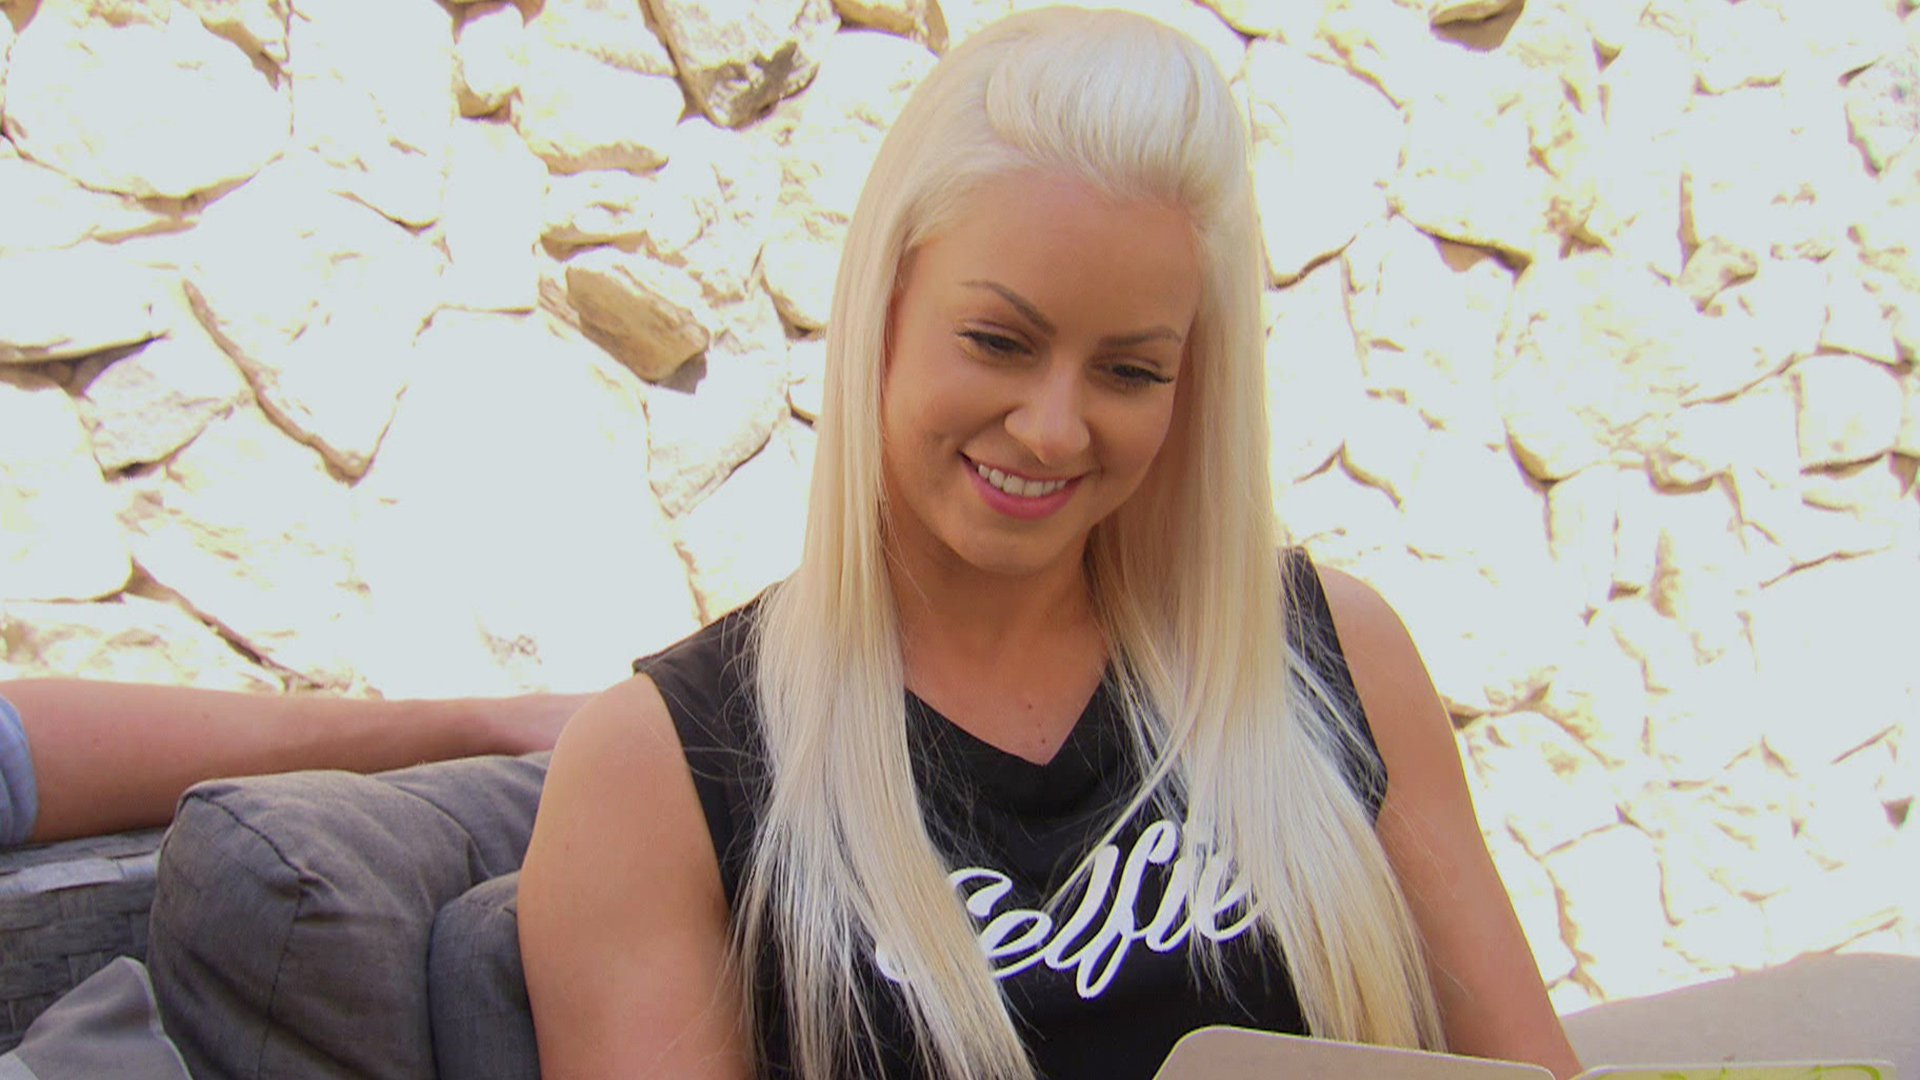 Now that Maryse can see, she is able to properly read Miz's love note.